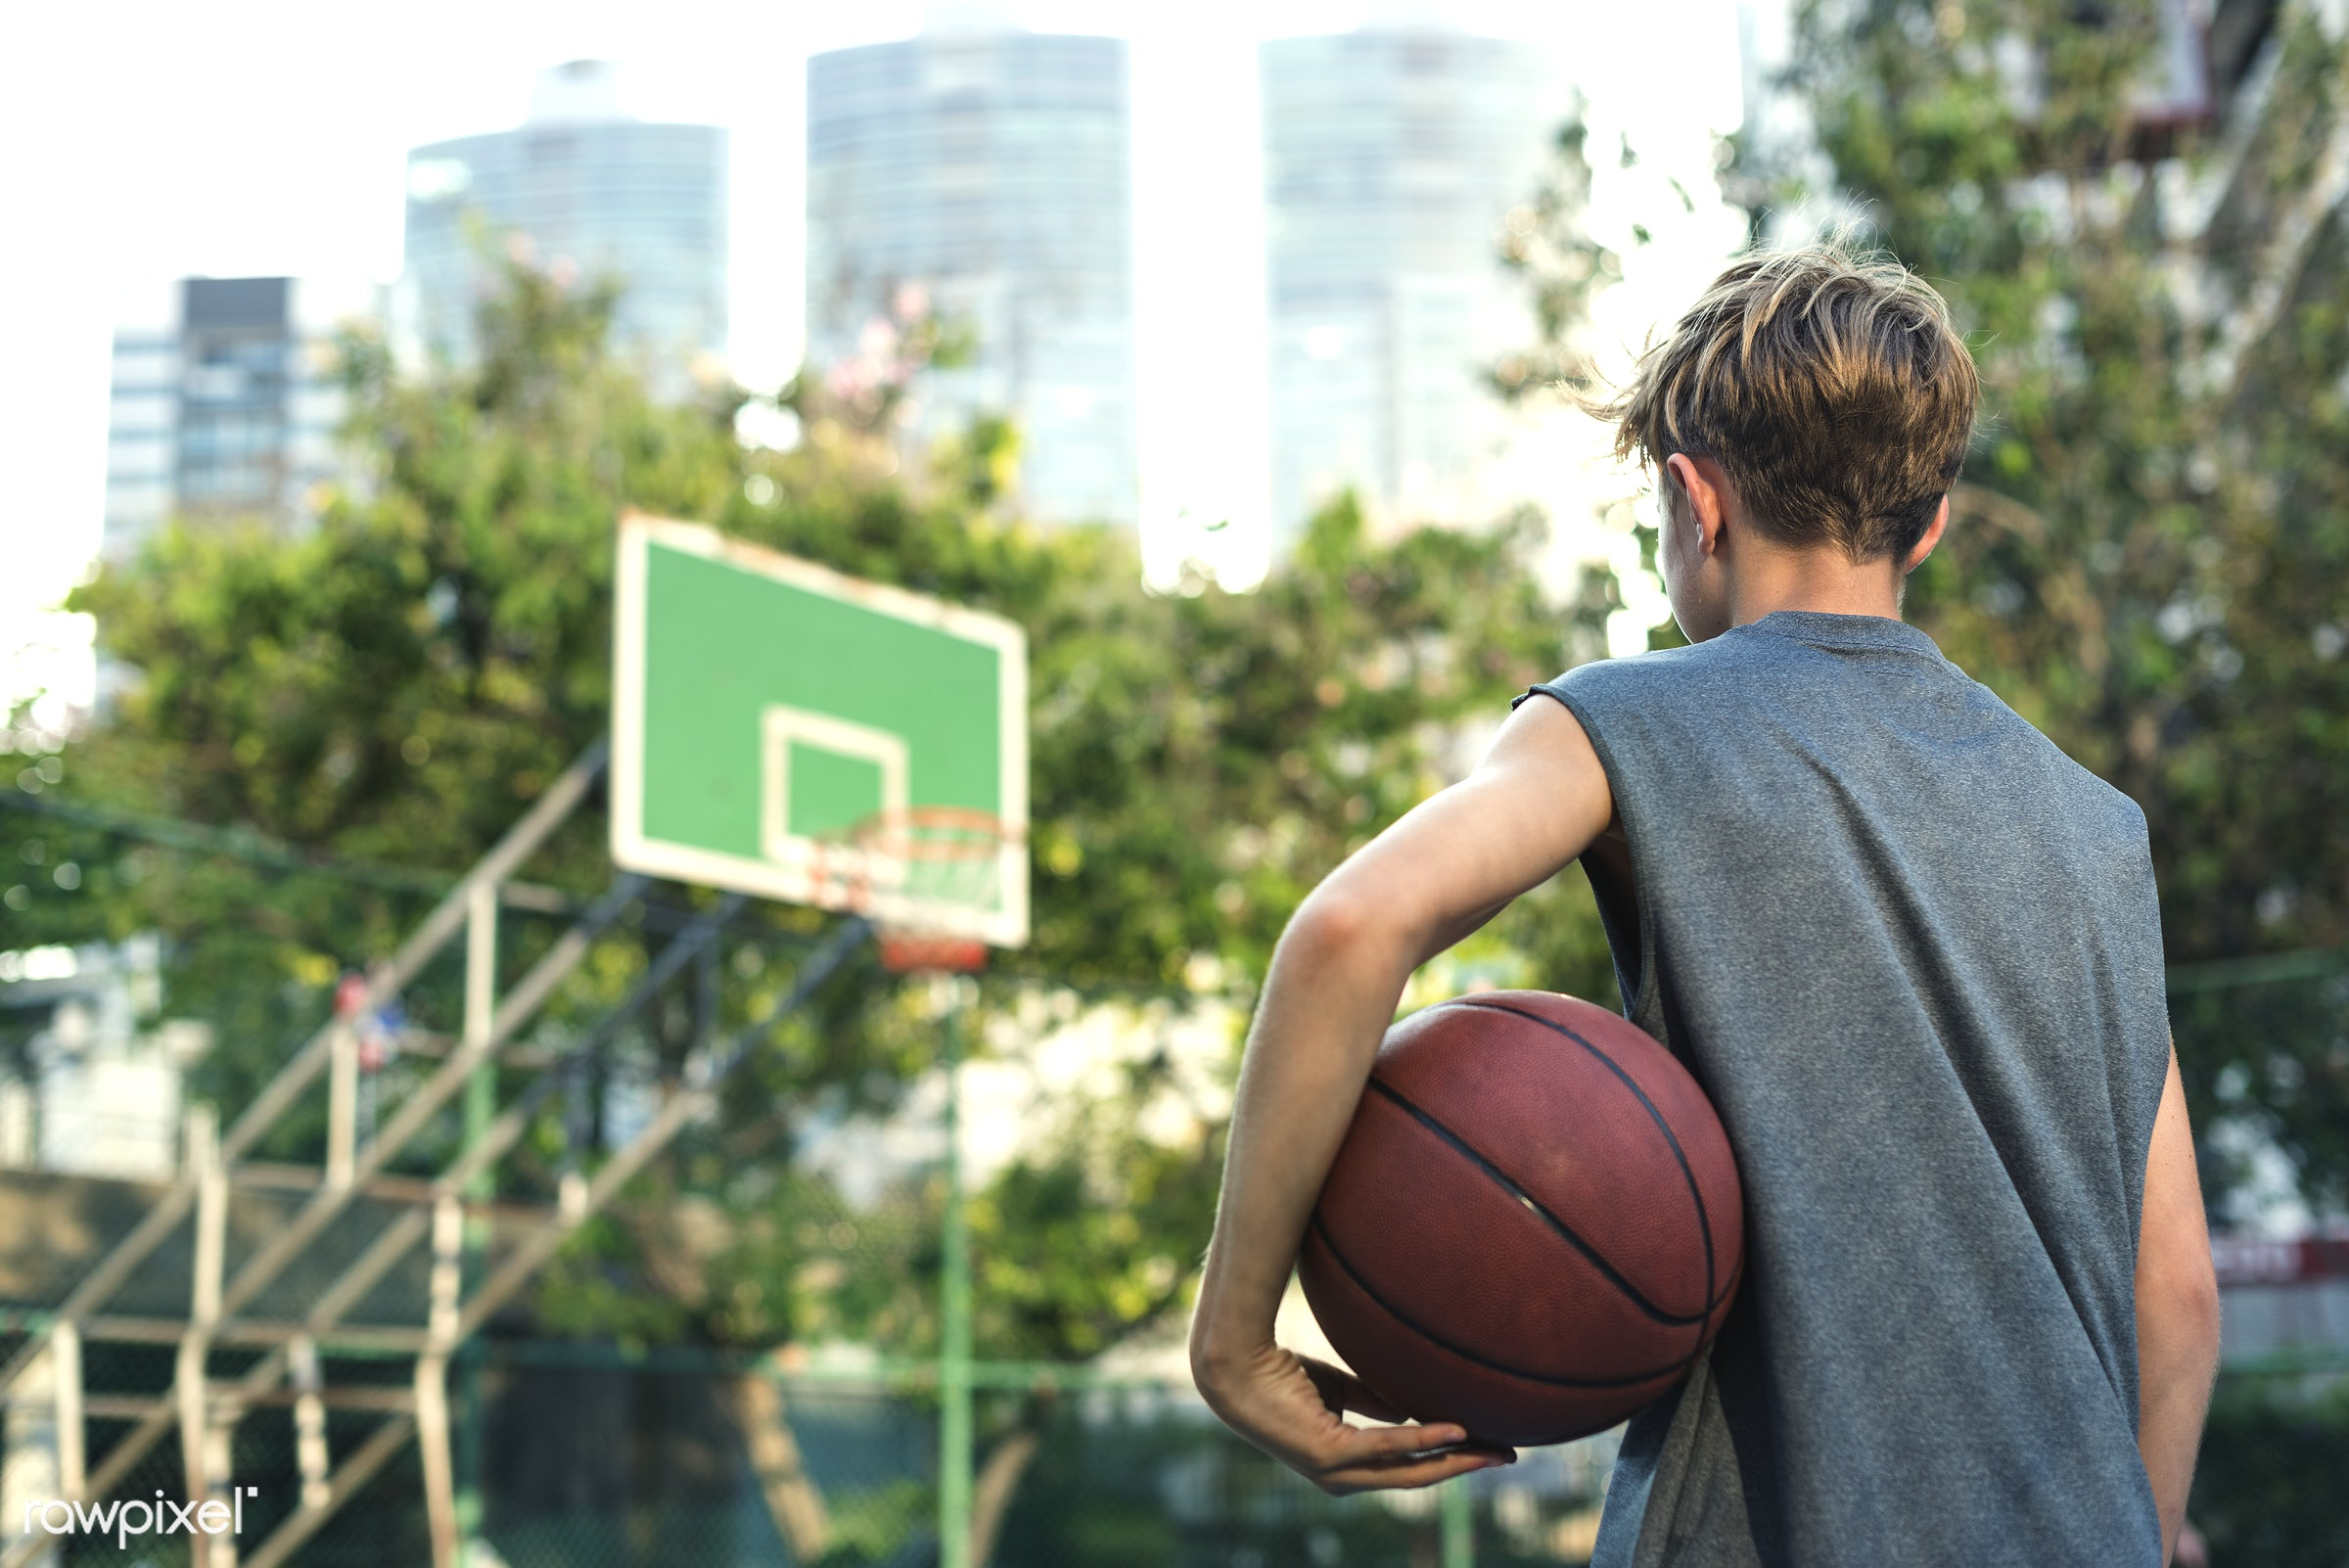 sport, basketball, activity, alone, boy, exercise, game, gymnasium, man, one, play, player, practice, shoot, stadium,...